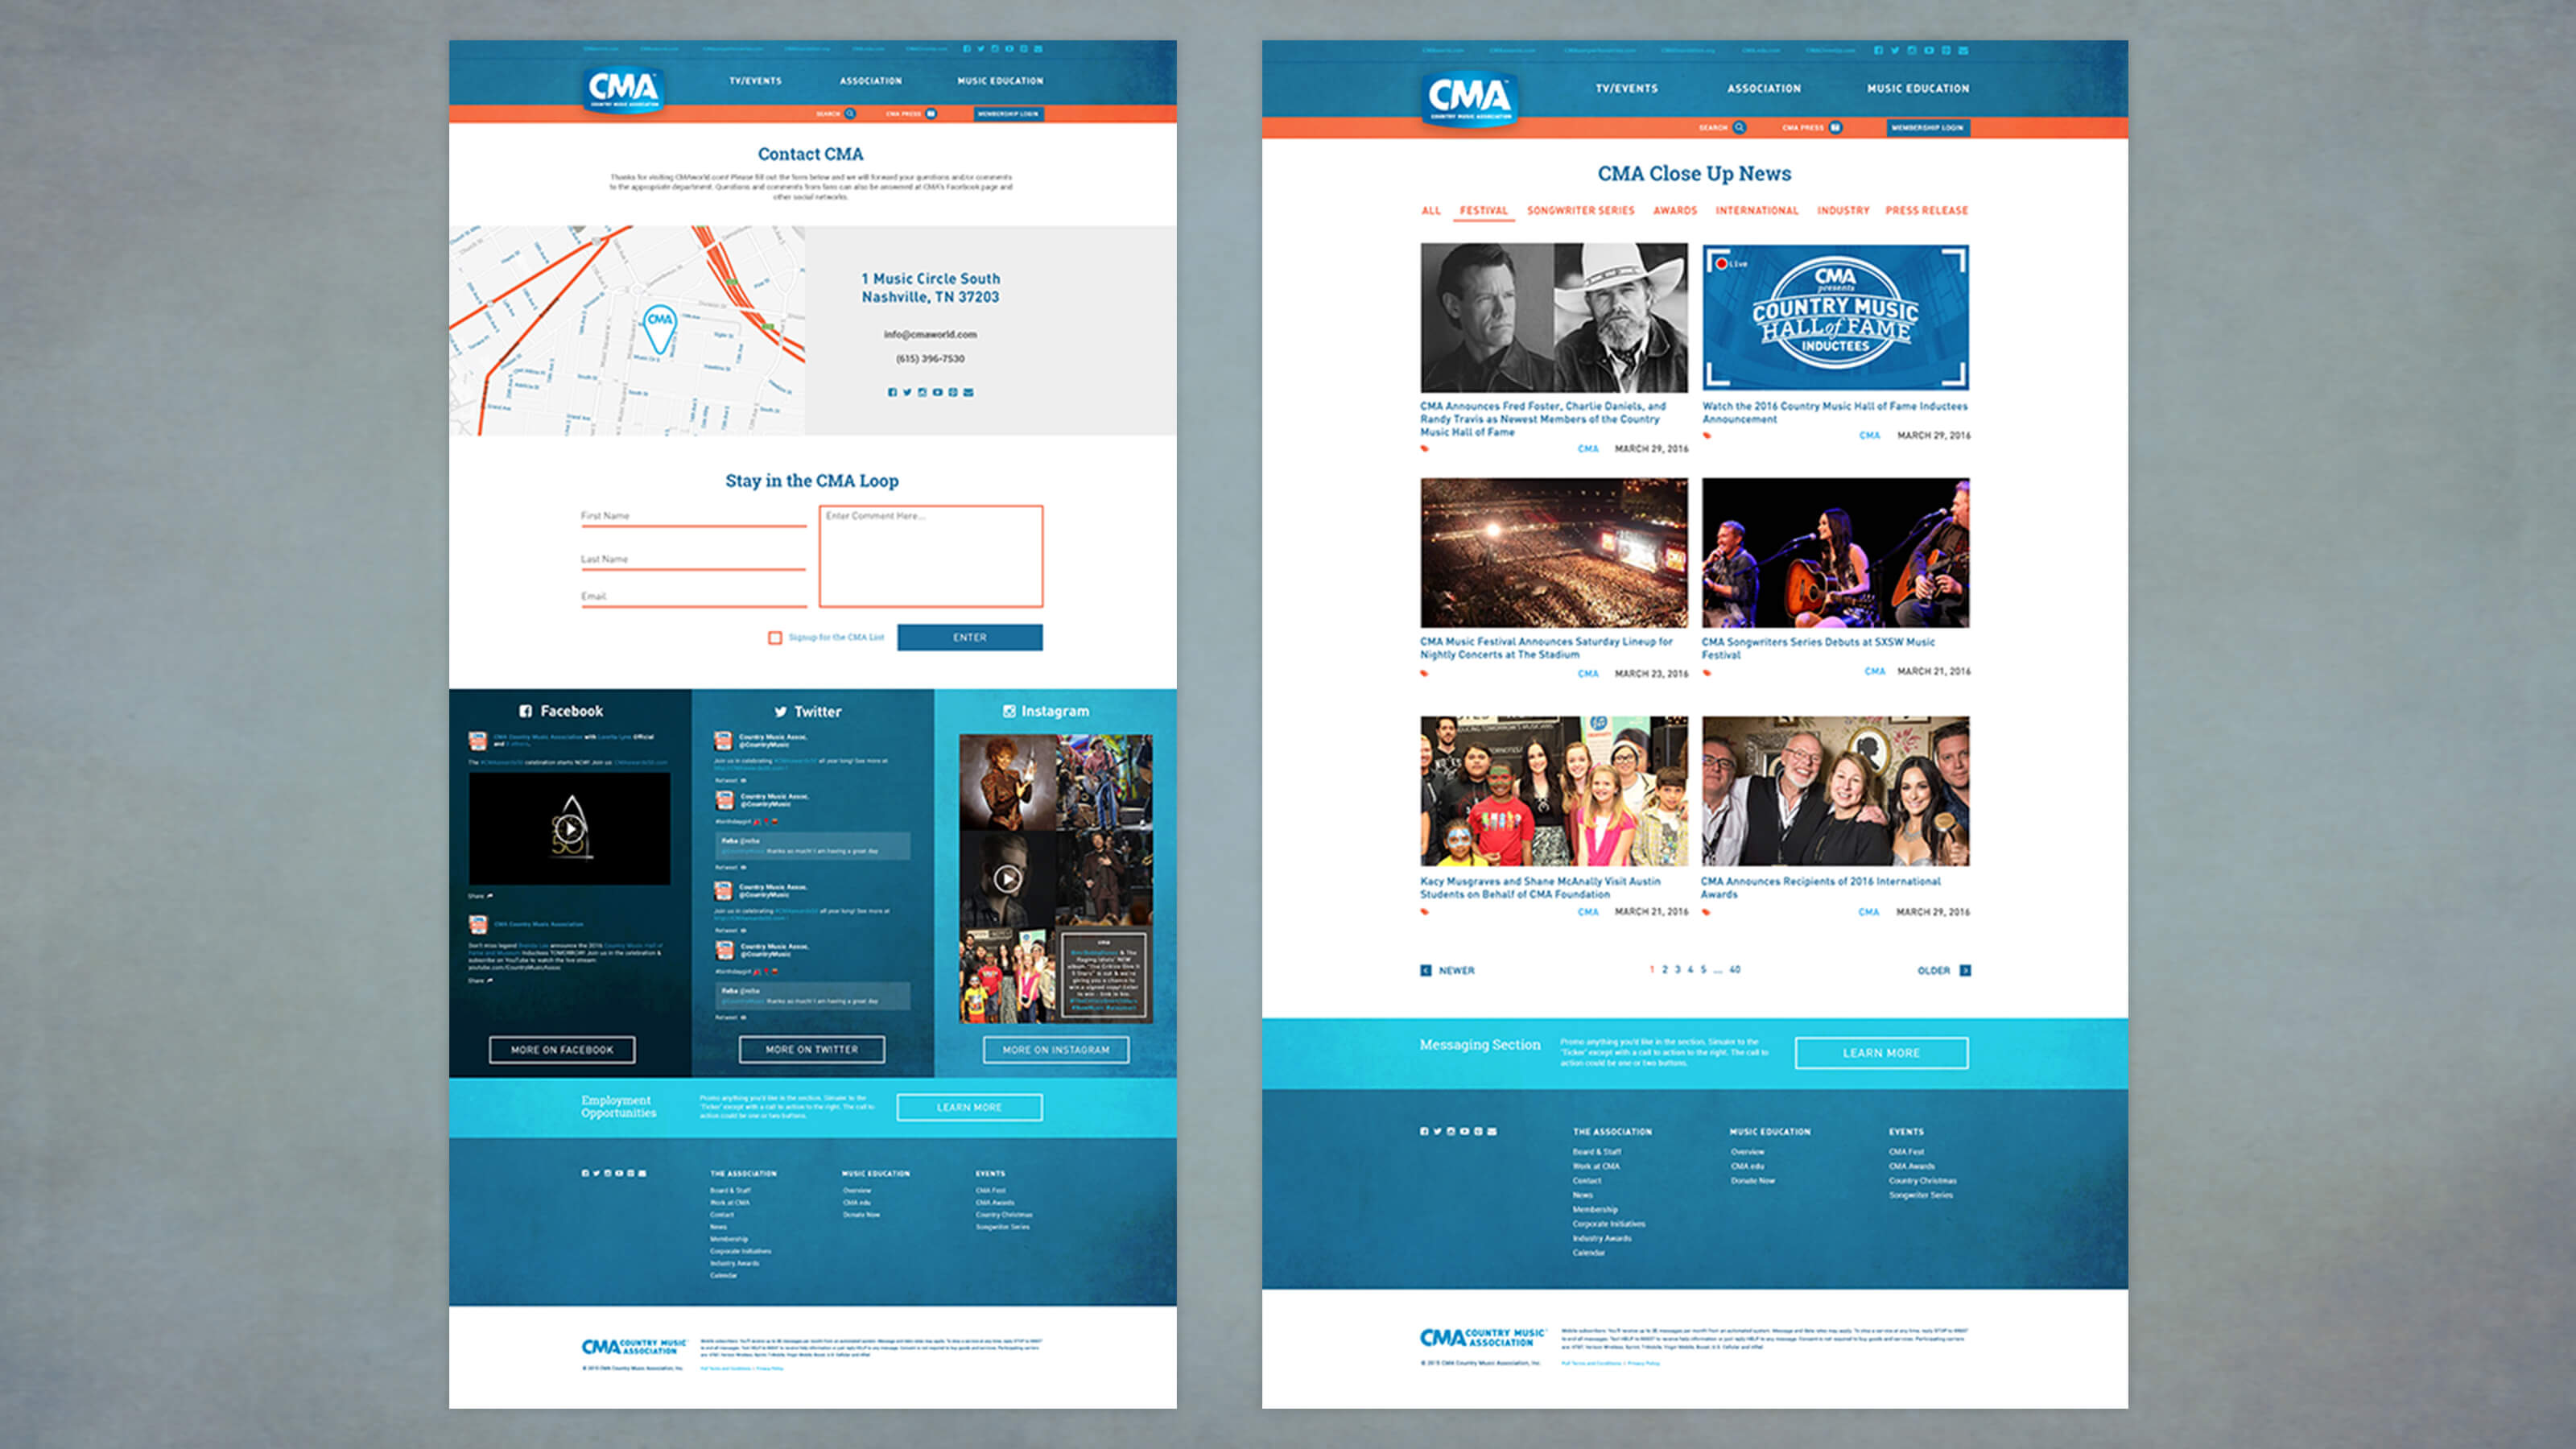 News page and contact page design for CMA World web design for Ben Fieker's Fieker Brothers website